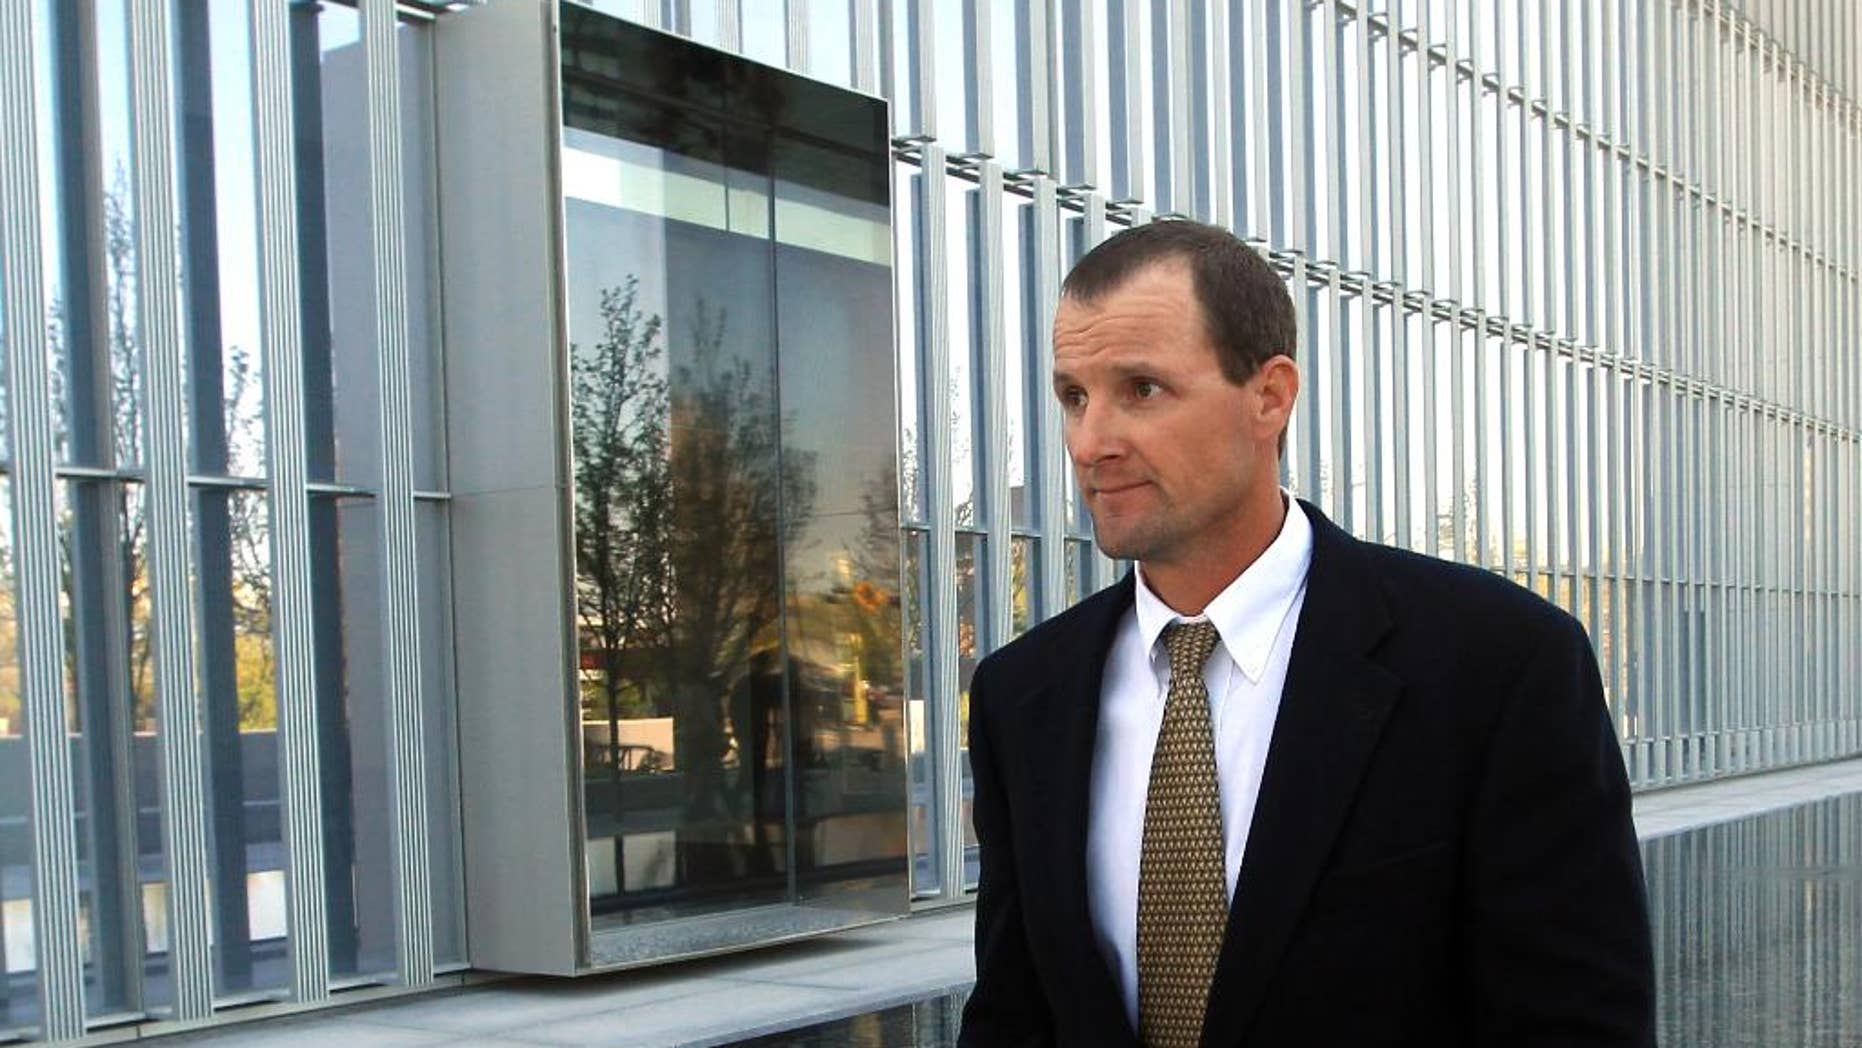 Jared Ehlers, of Moab, walks from the Federal Courthouse after appearing in court Wednesday, April 30, 2014, in Salt Lake City. Ehlers has has pleaded not guilty to federal charges of stealing a fossilized dinosaur footprint. He is accused of dislodging a piece of sandstone with a three-toed ancient dinosaur track from the Hell's Revenge jeep Trail in the Sand Flats Recreation Area near Moab.   Ehlers is charged under a federal law passed in 2009 to protect paleontological artifacts. (AP Photo/Rick Bowmer)